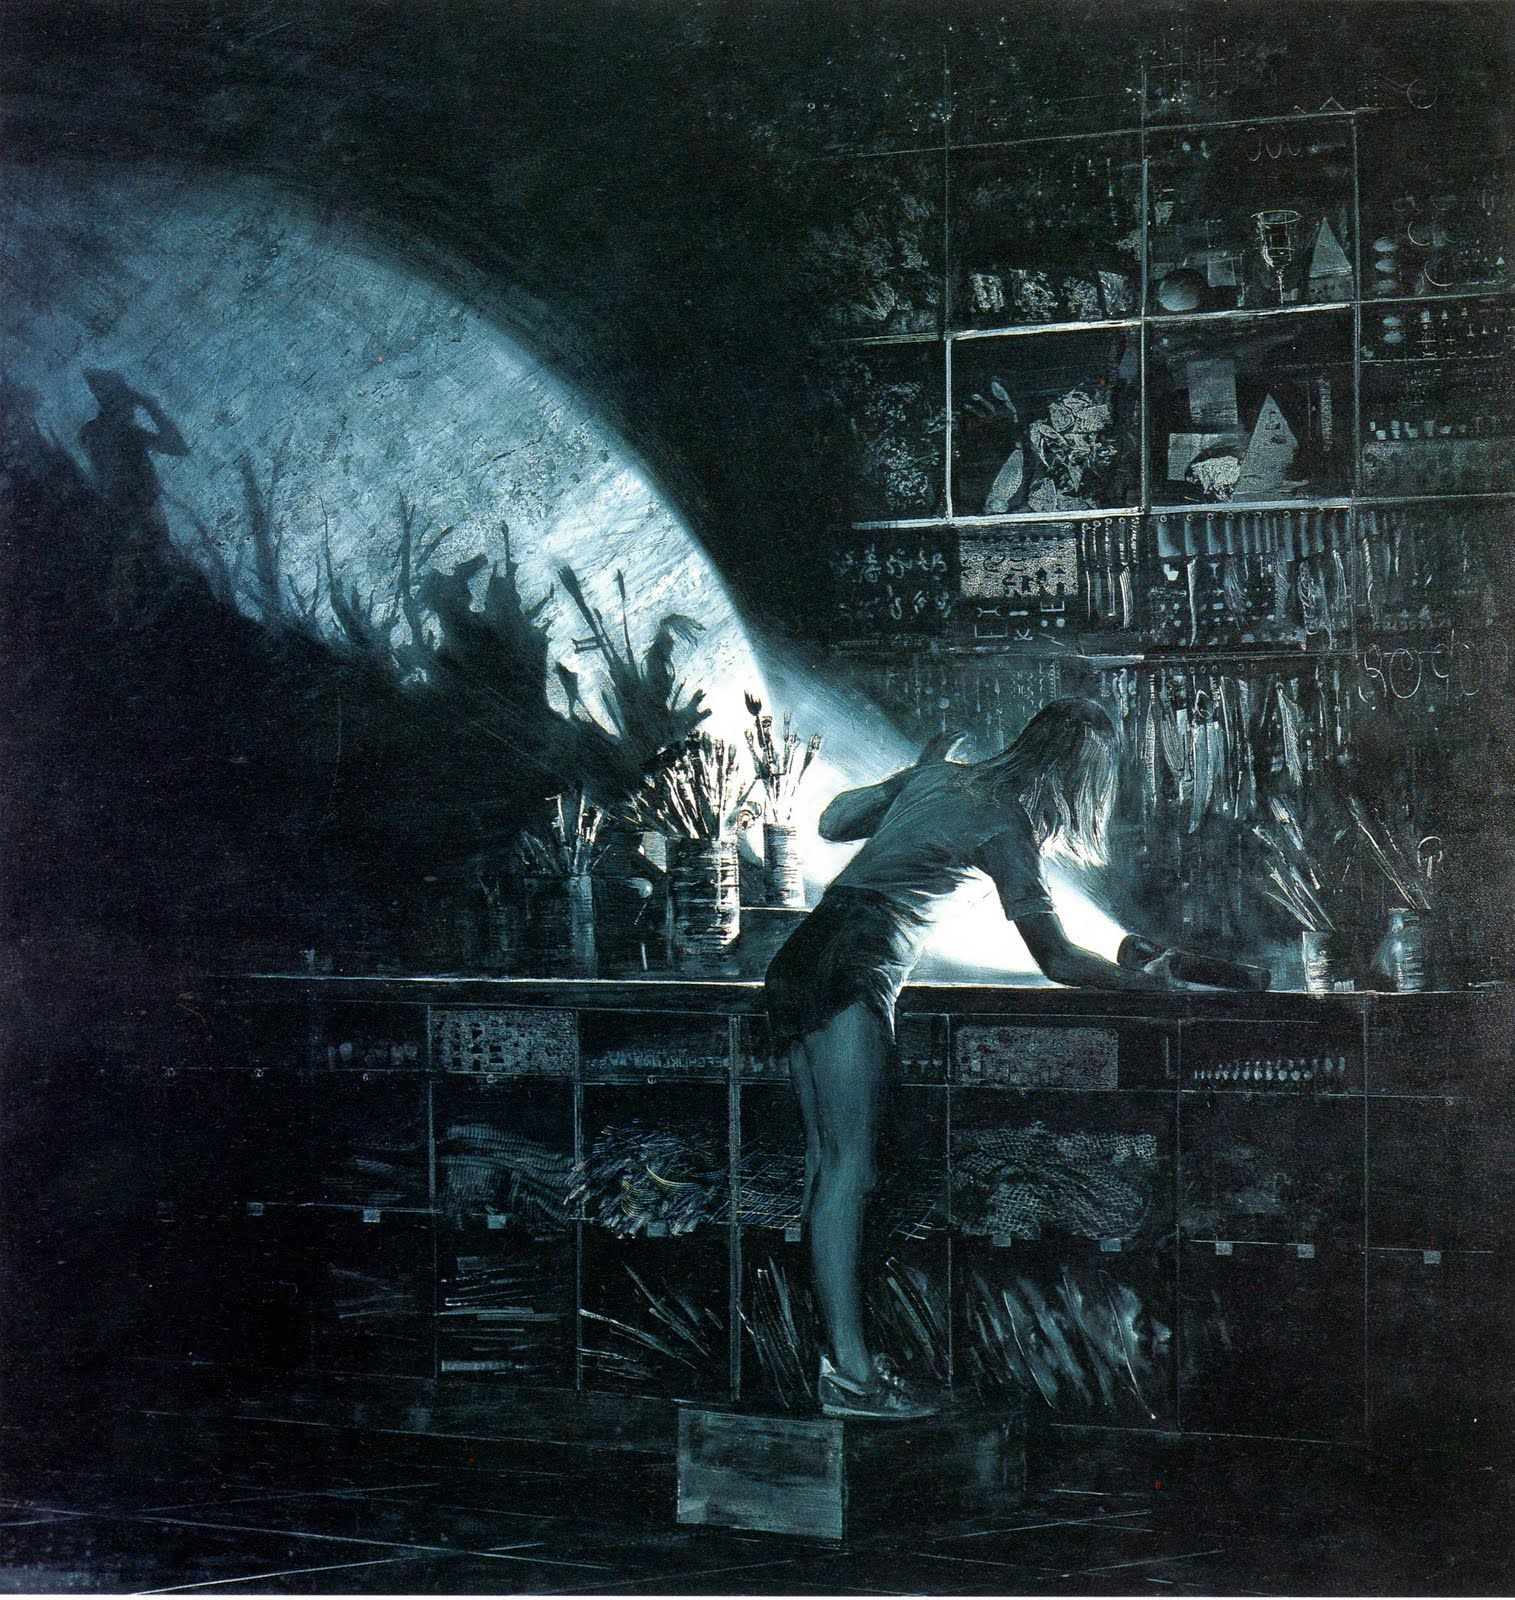 the hellenistic characteristics in lens by mark tansey